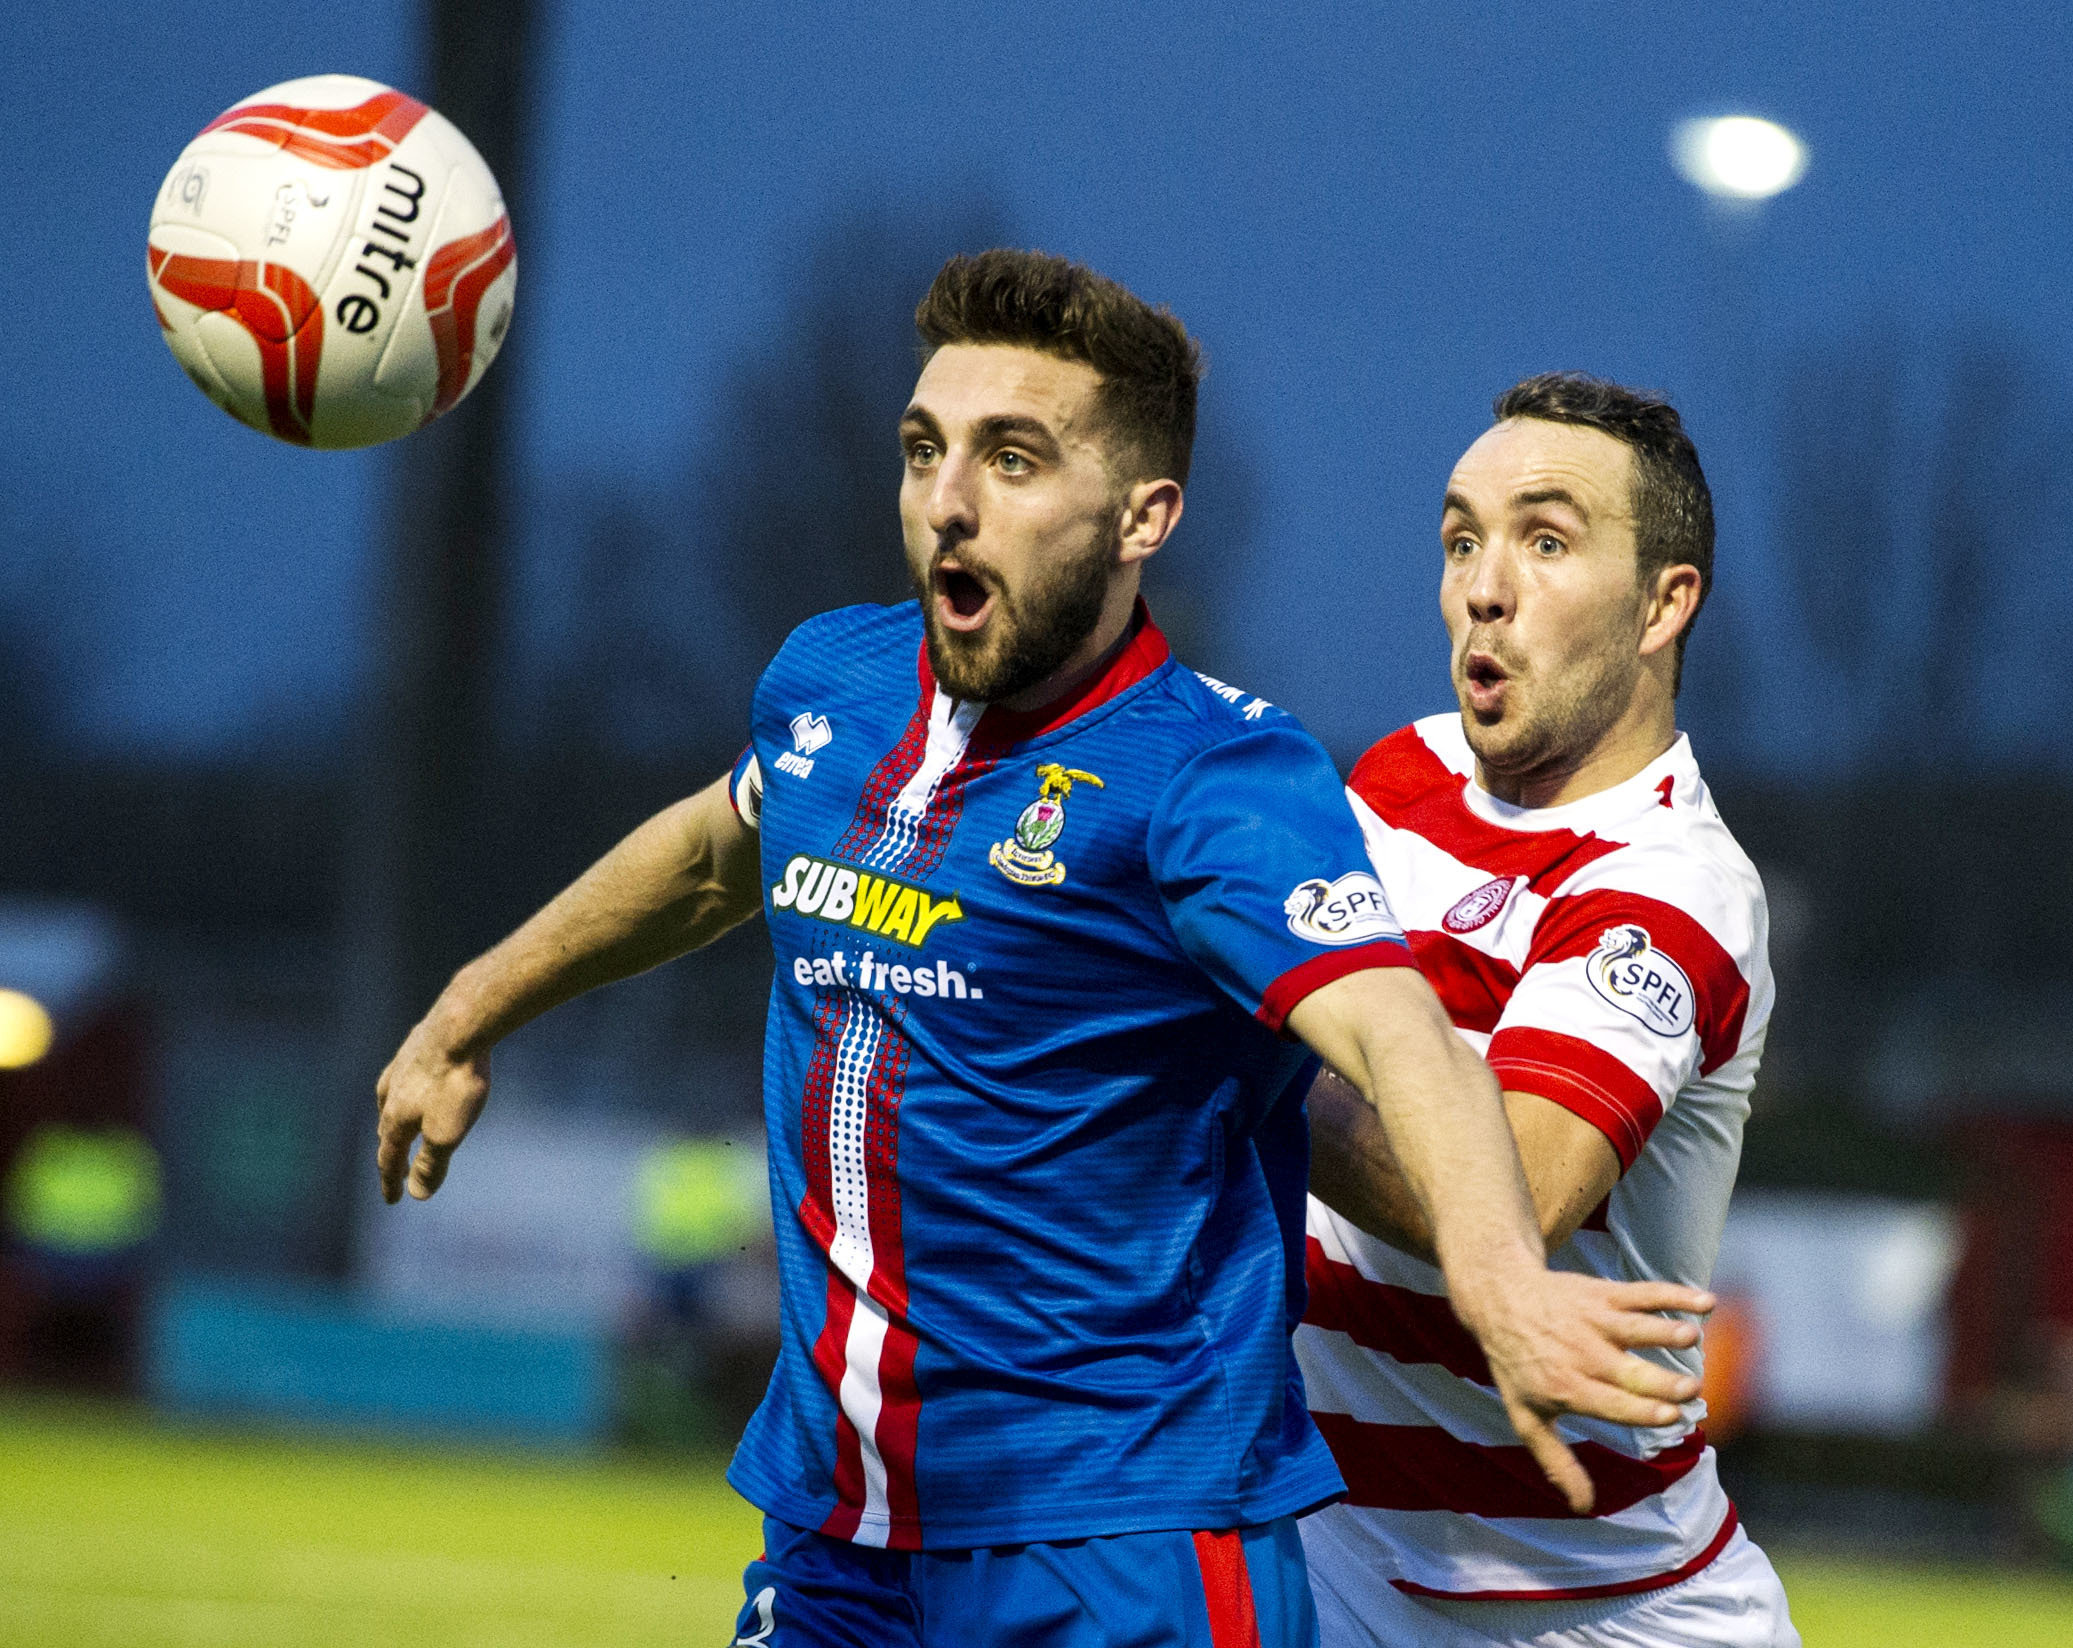 Inverness Caledonian Thistle's Graeme Shinnie will join Aberdeen this summer.